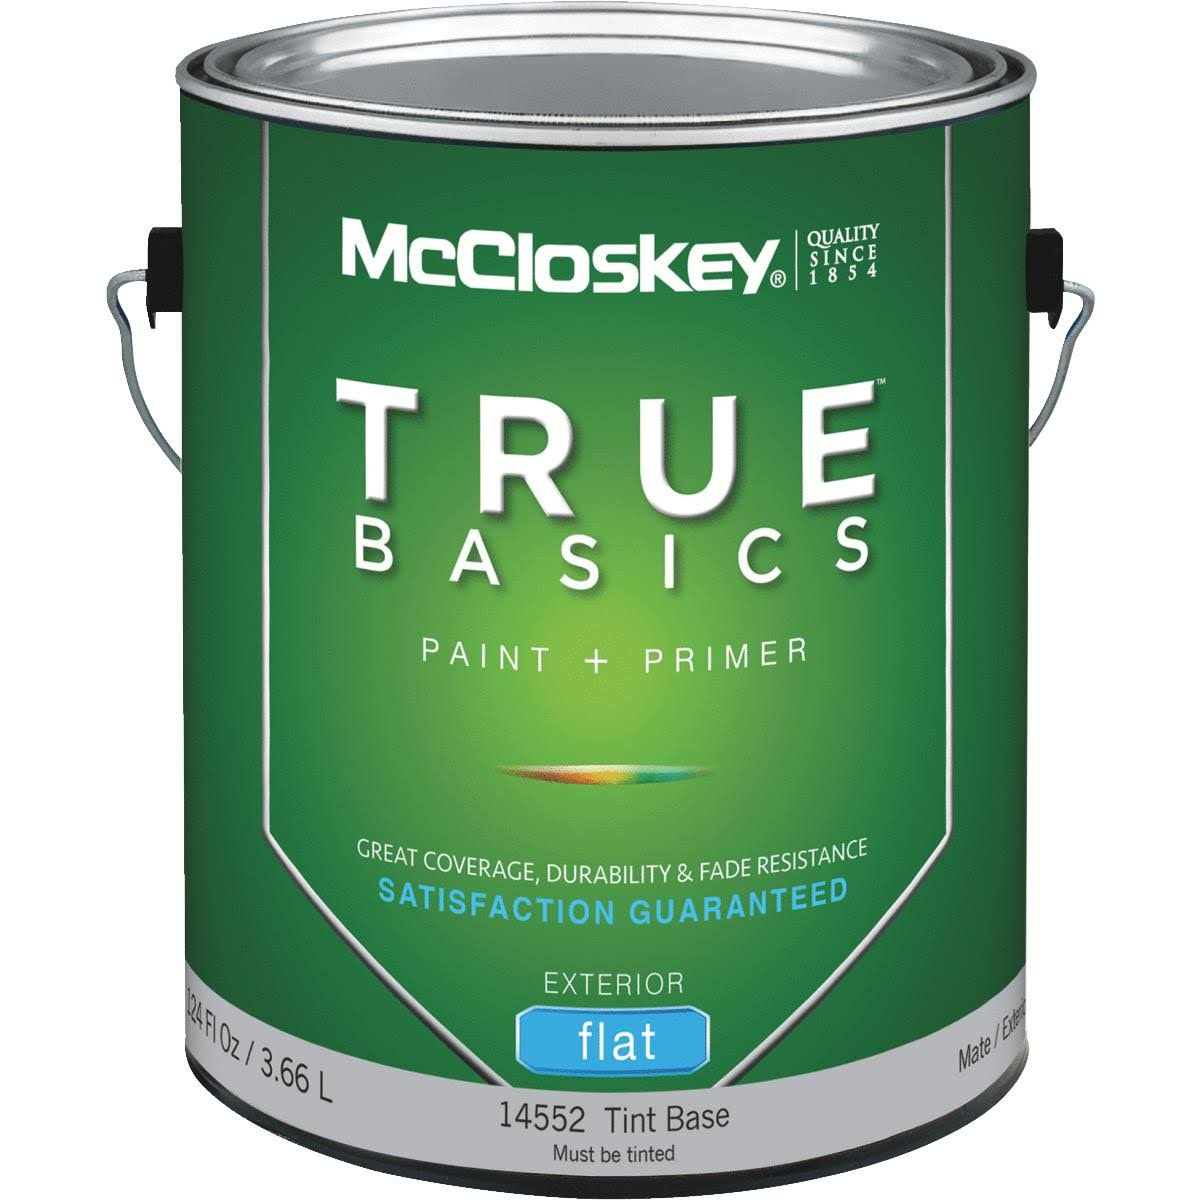 McCloskey True Basics Latex Paint & Primer Flat Exterior House Paint